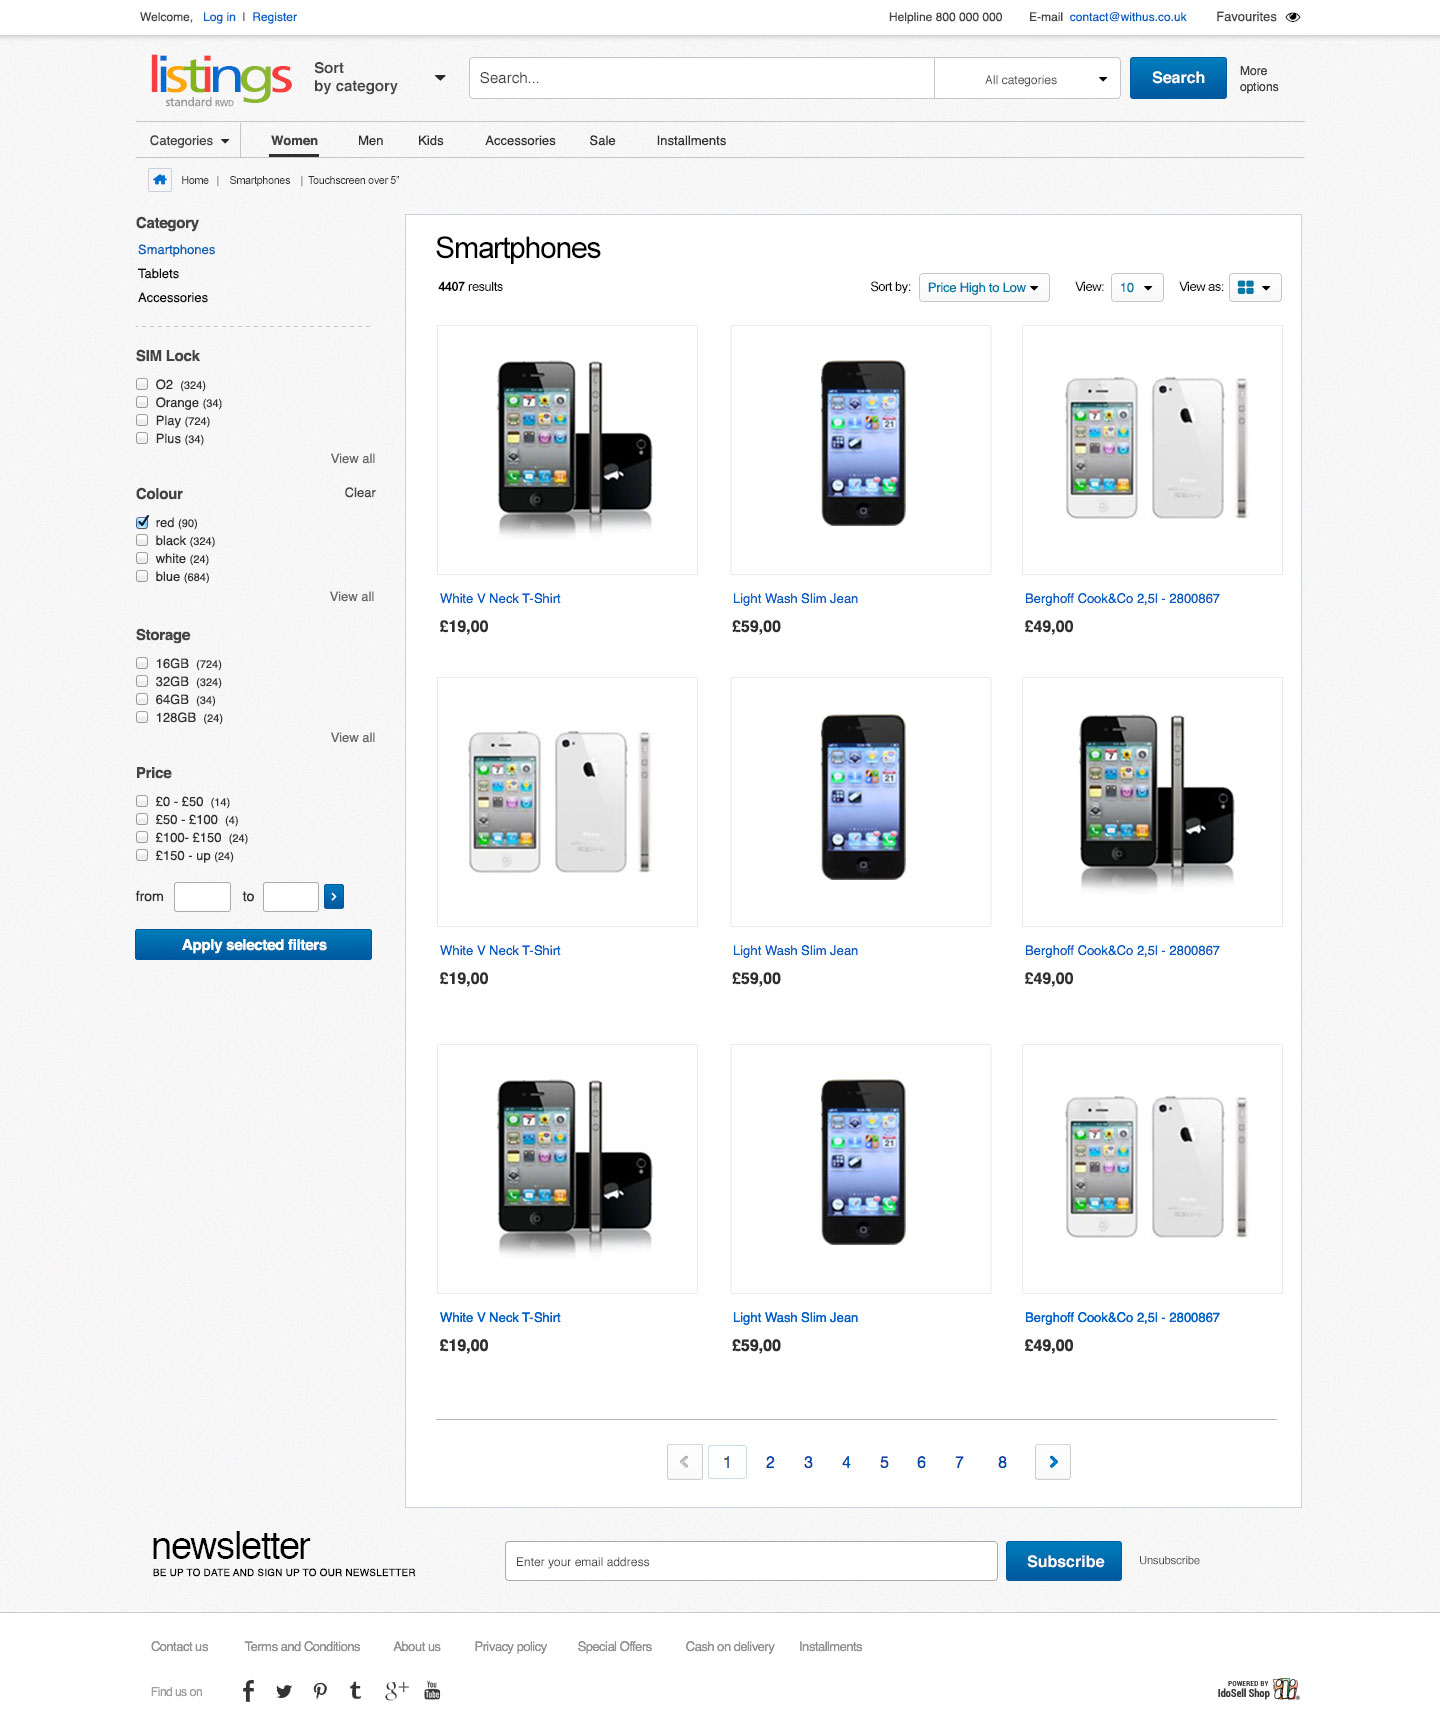 eBay shop front enables browsing the products in two styles of product presentation. The first one is a tile arrangment.